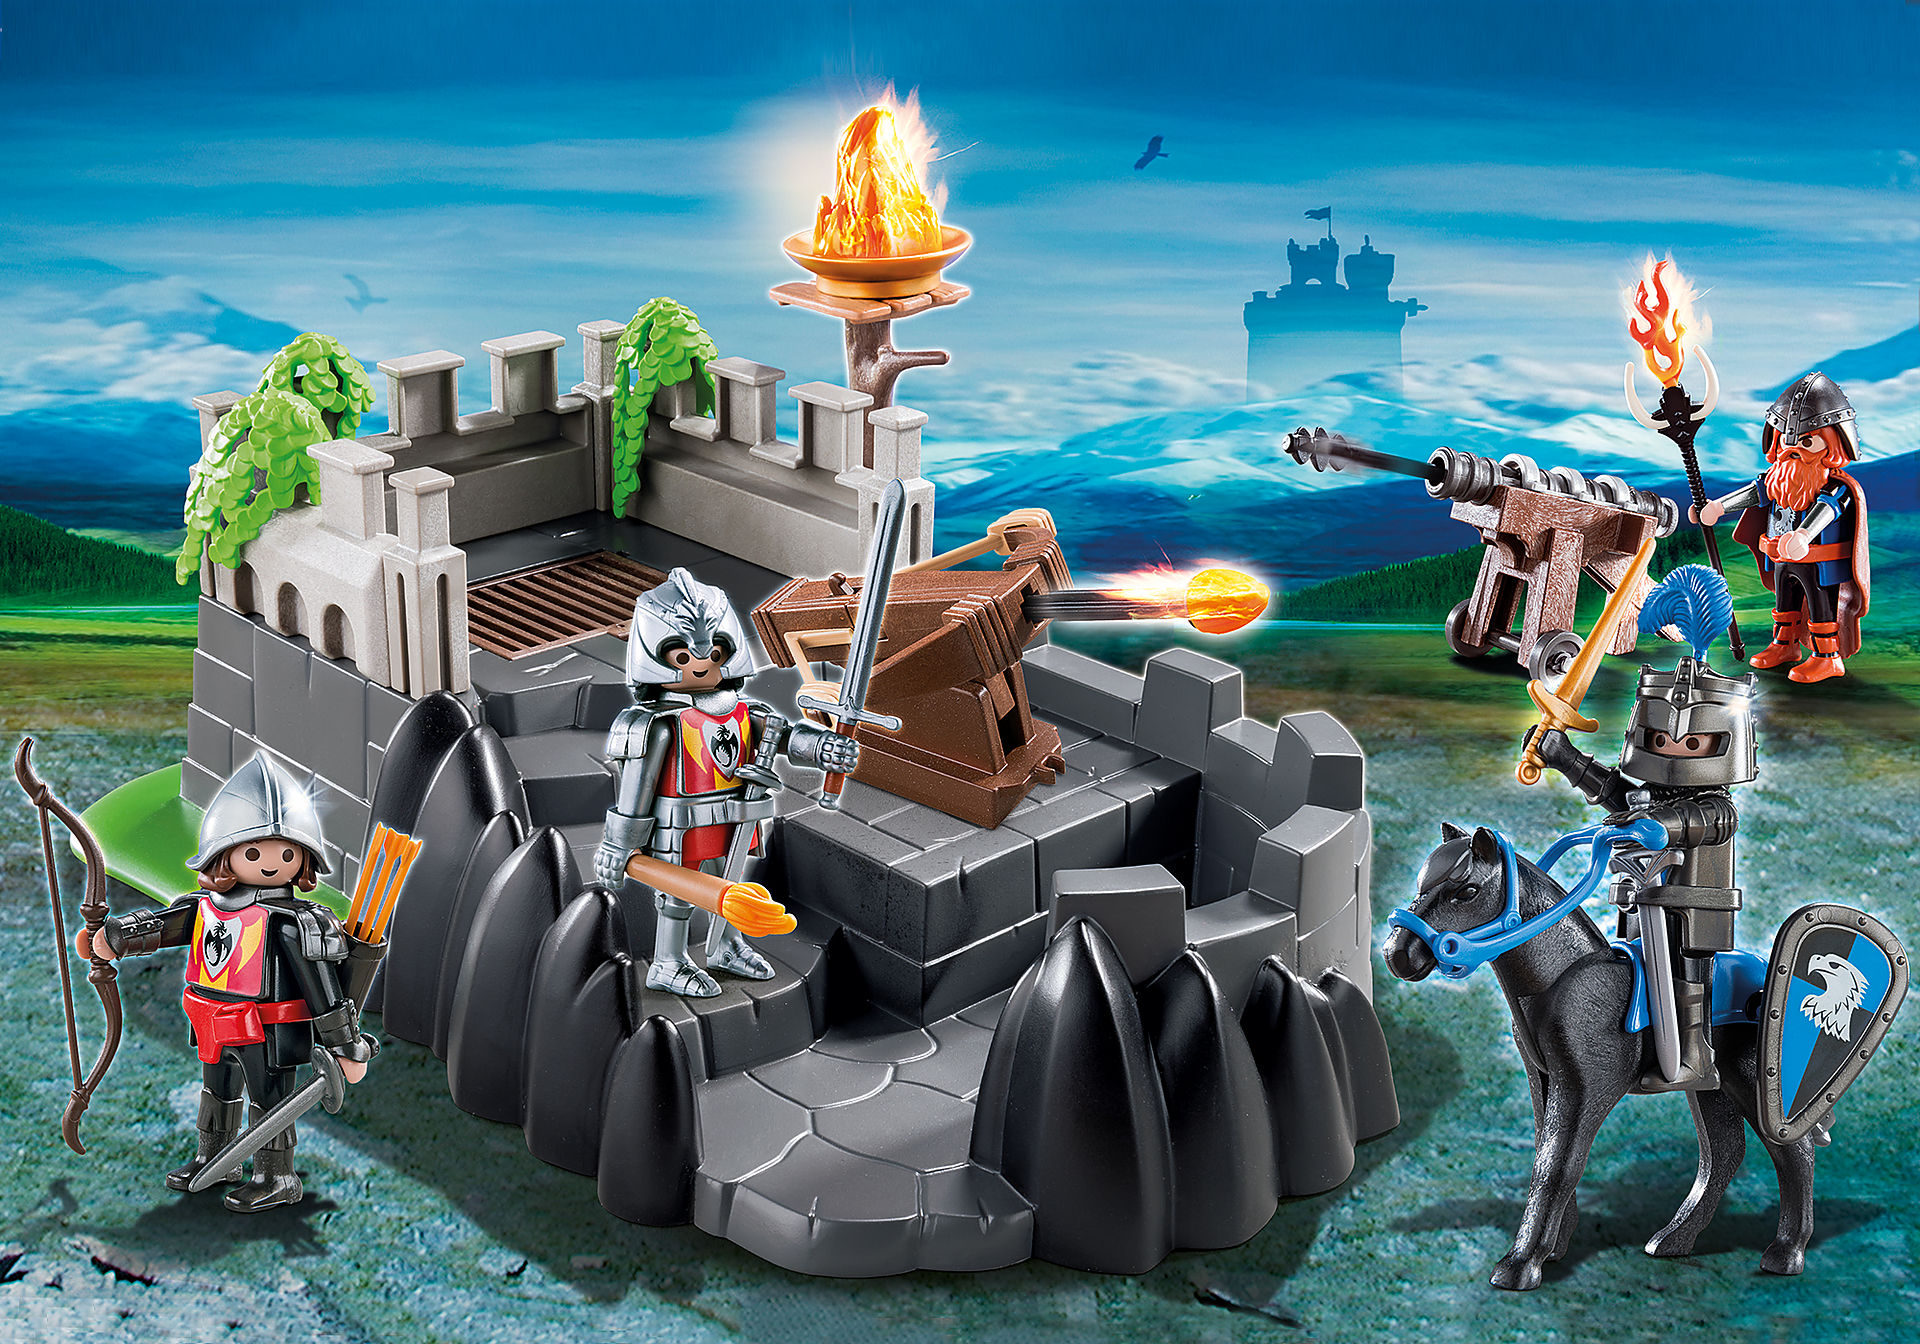 http://media.playmobil.com/i/playmobil/6627_product_detail/Drachenritter-Bastion